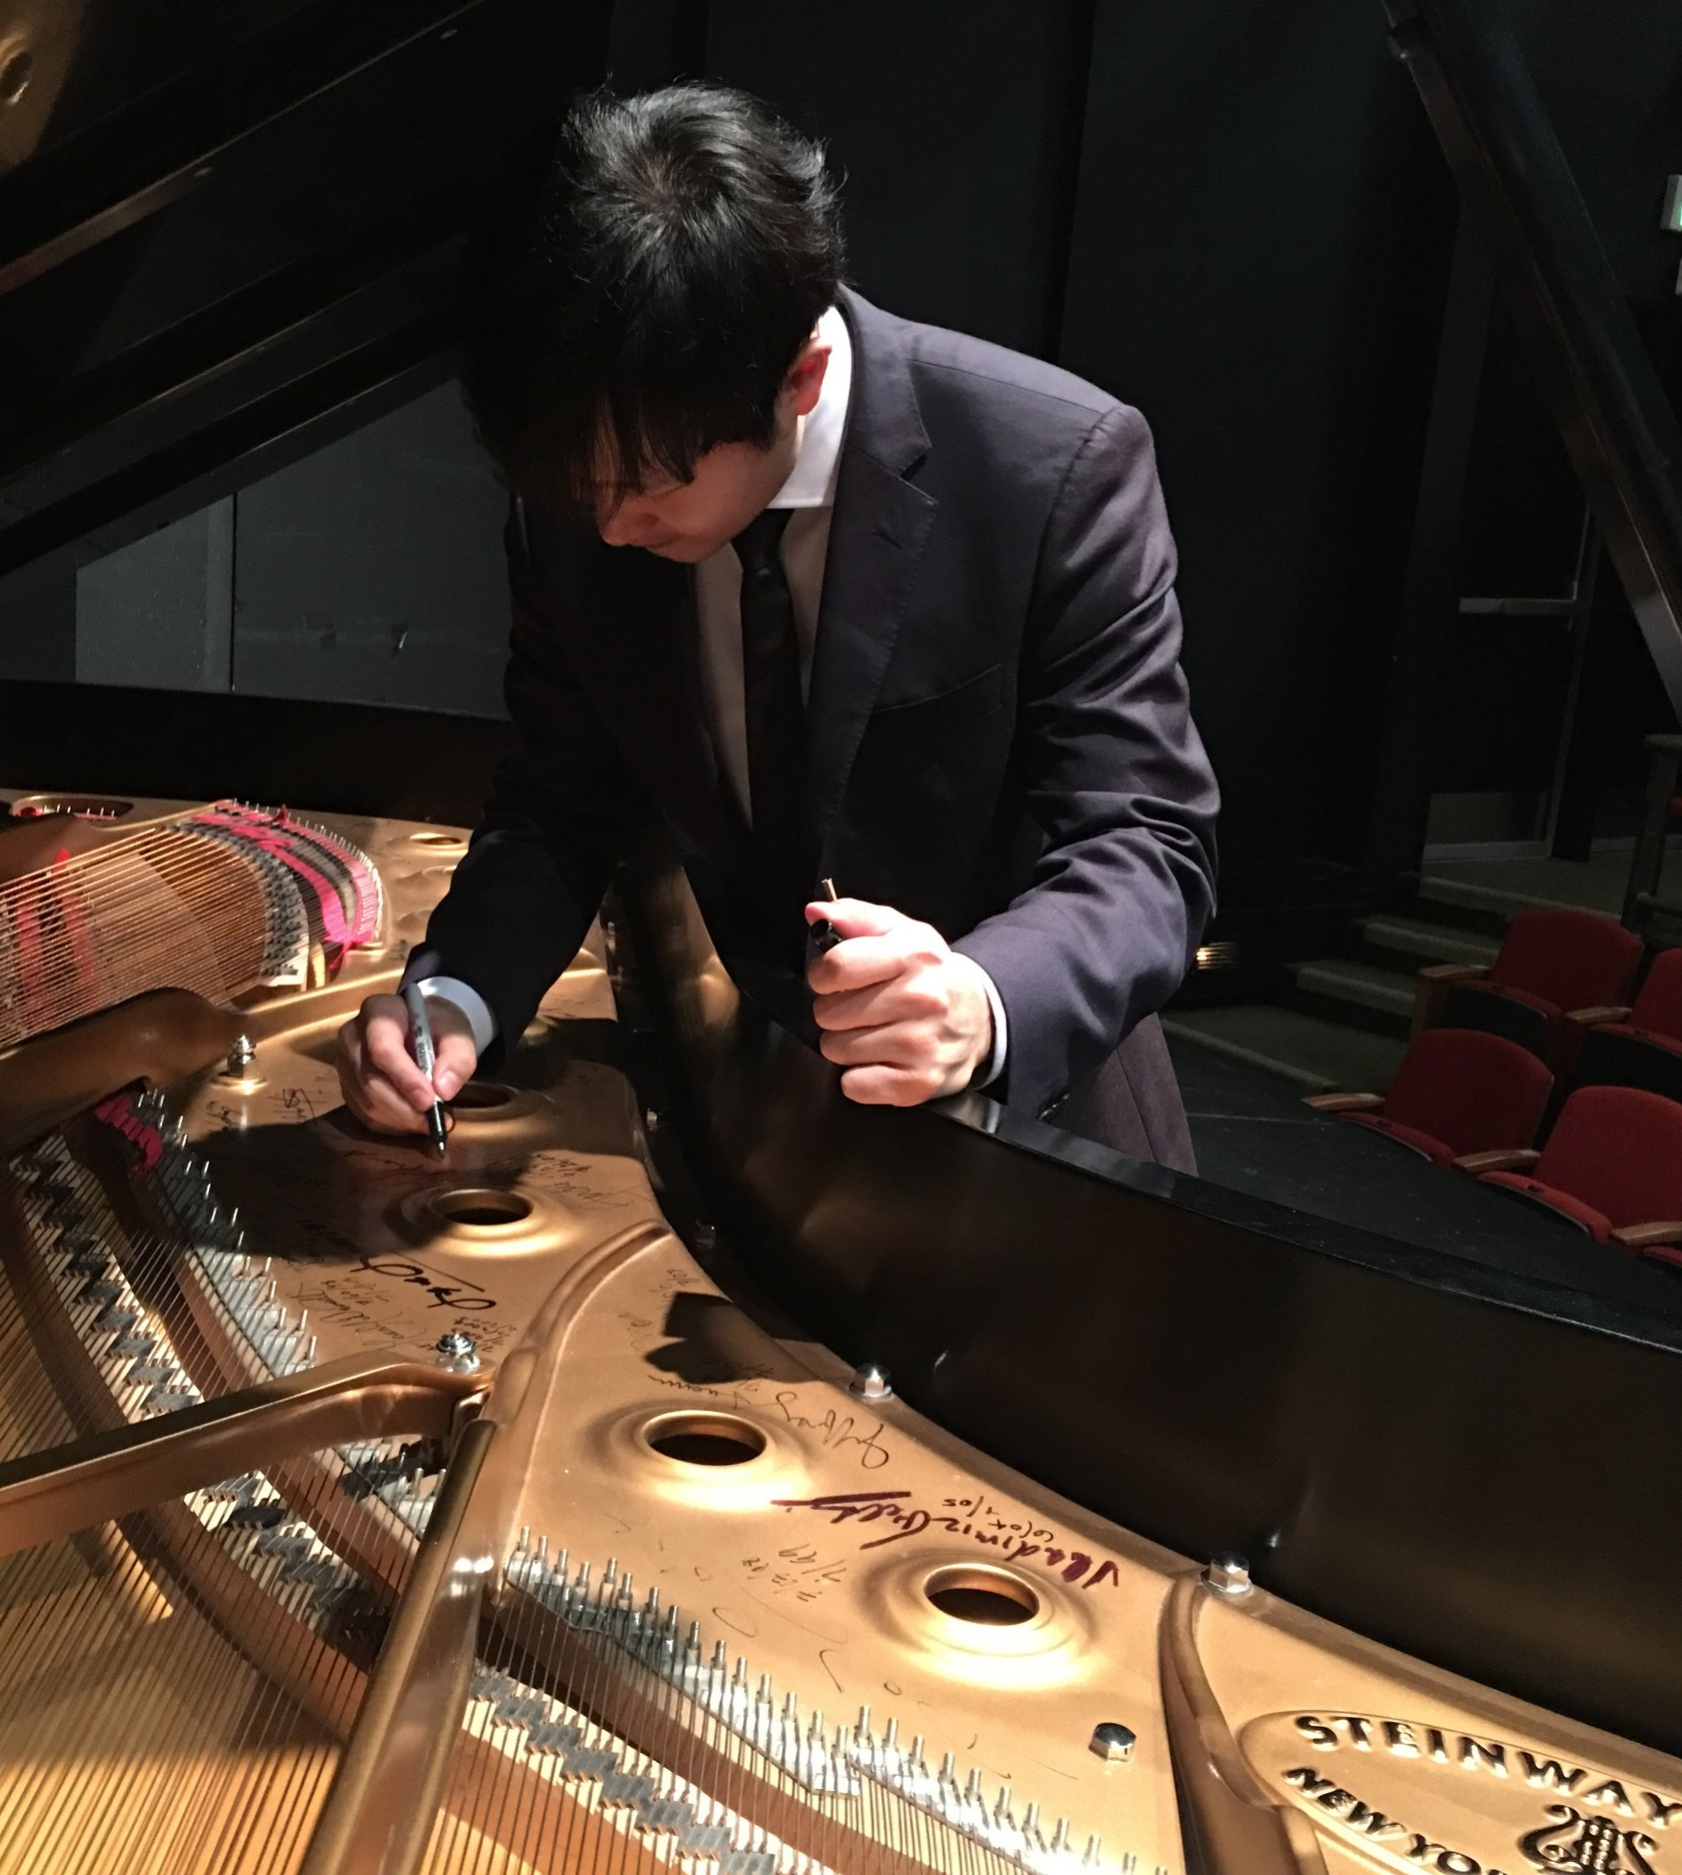 Yekwon signs the NY Steinway donated for the performance by Larry Vollum.